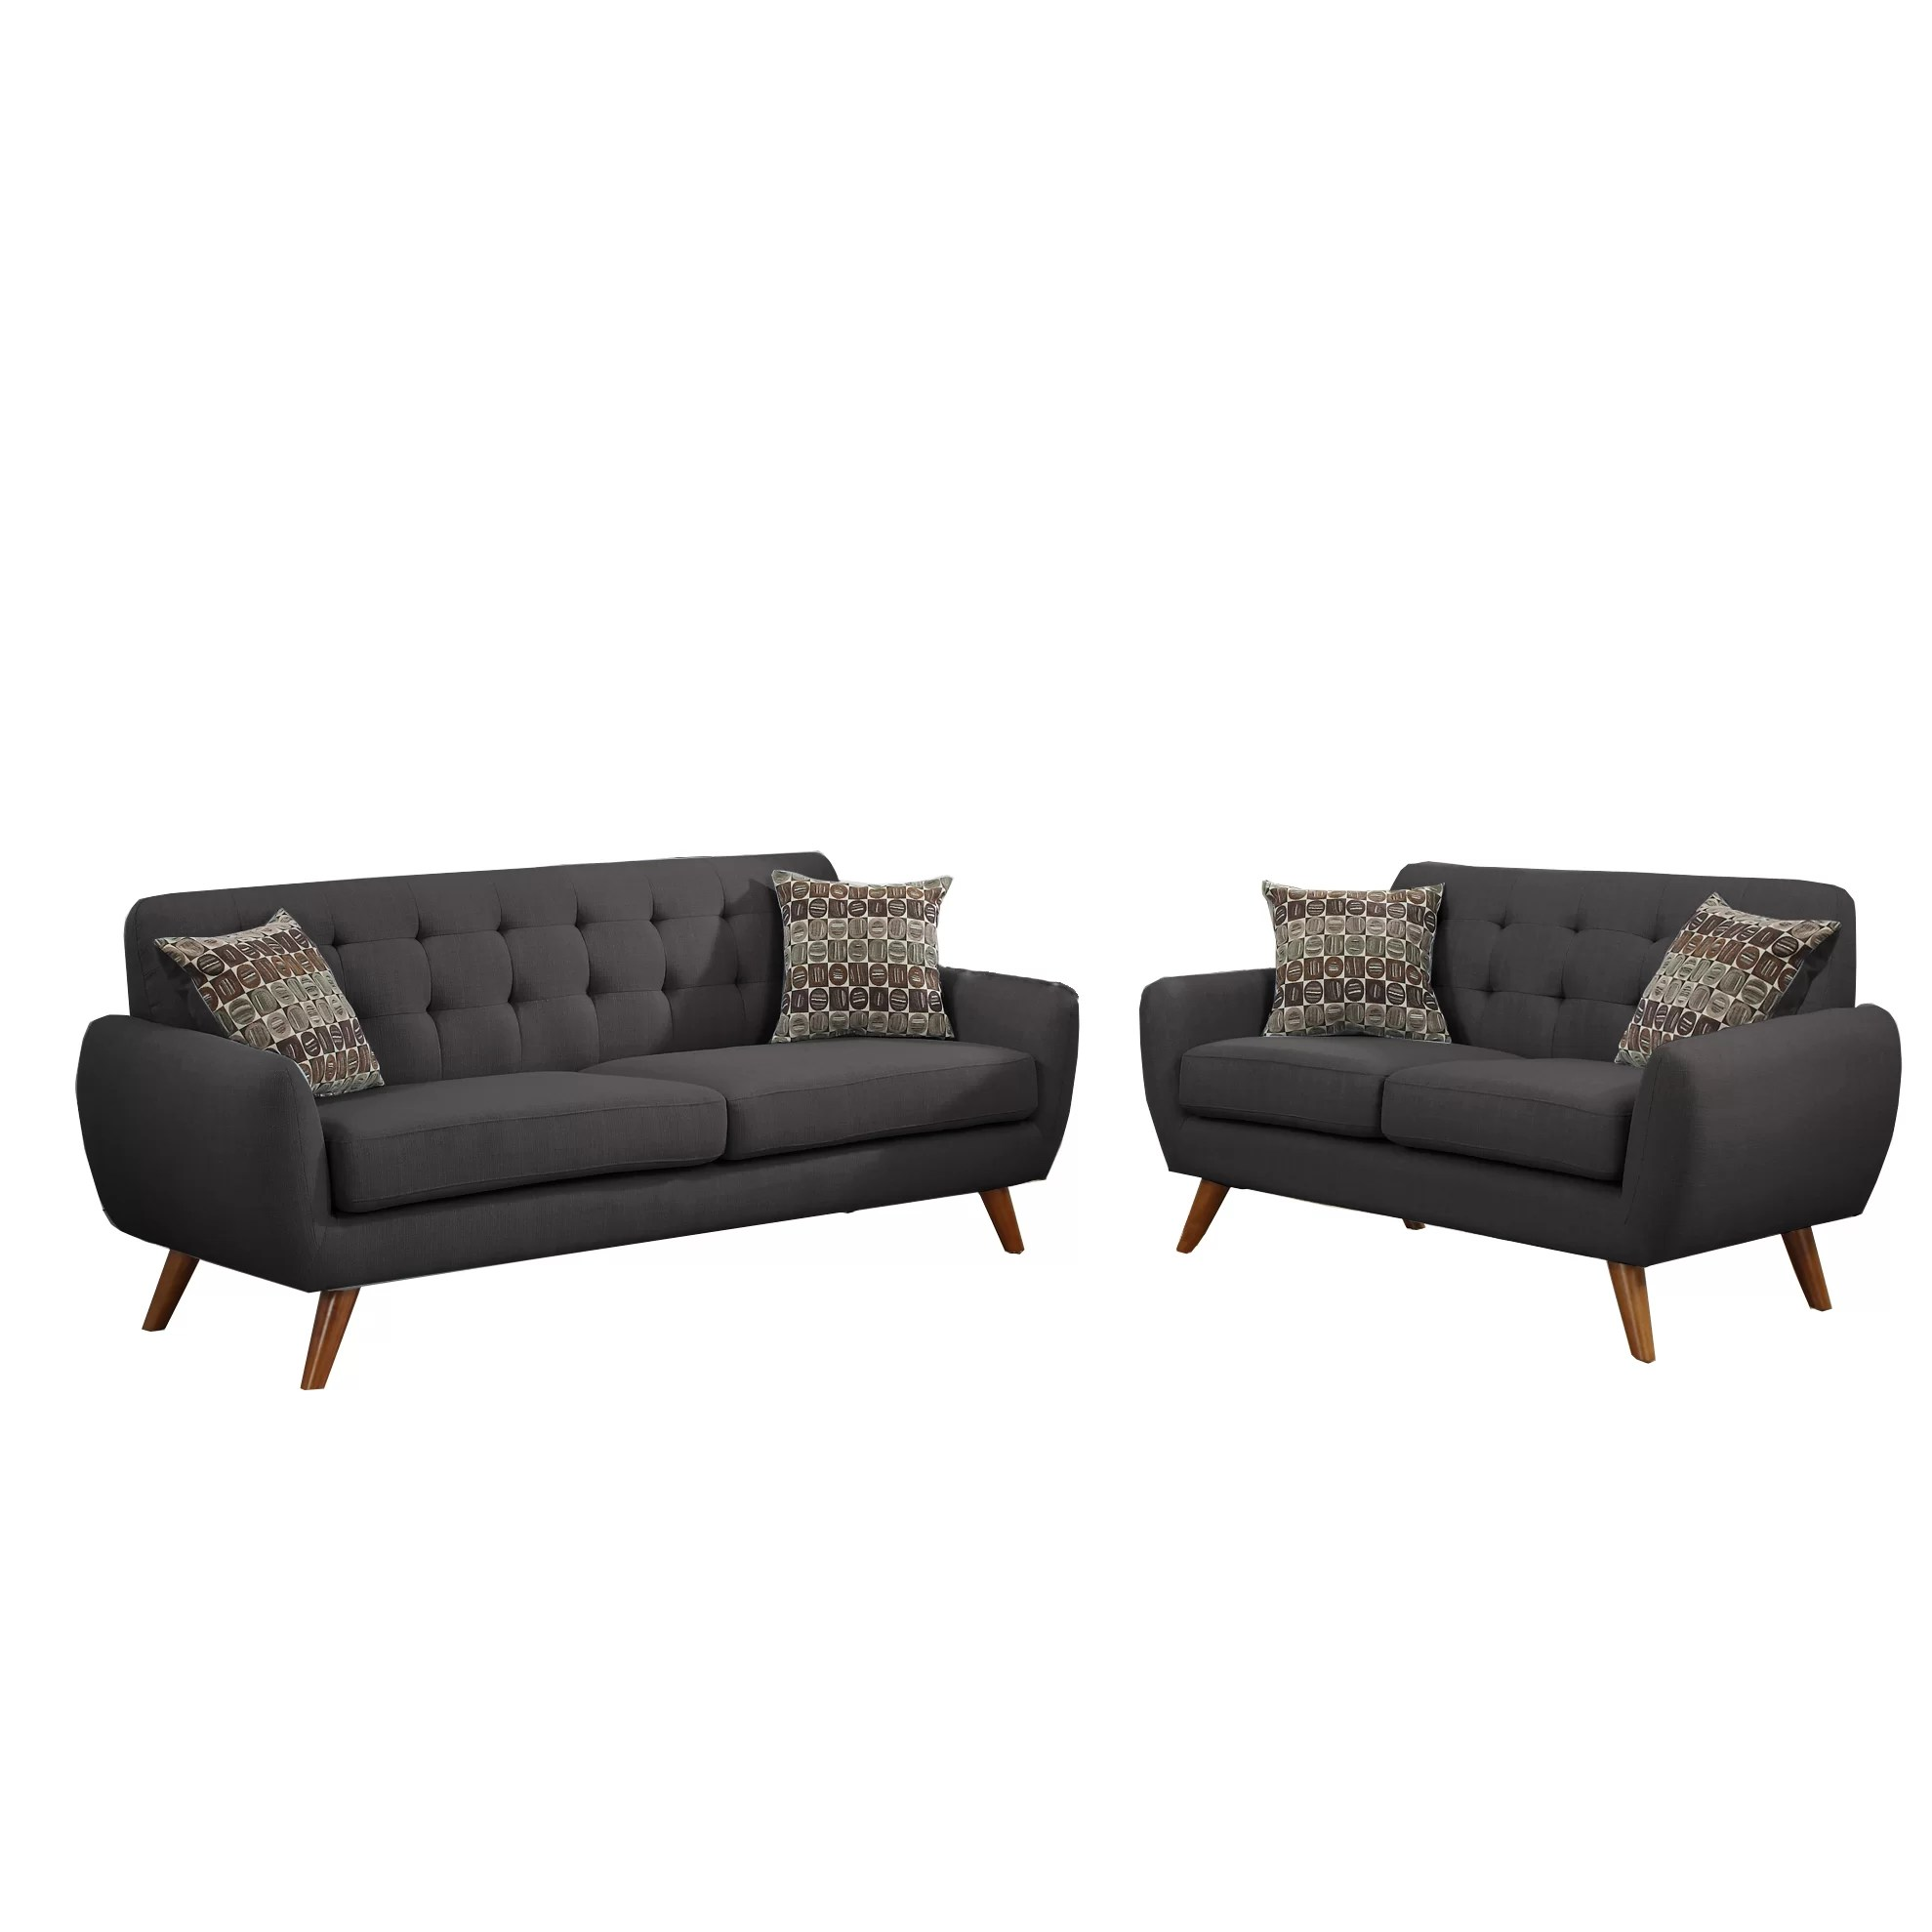 parker 2 piece sofa and loveseat in brown sofas that turn into beds poundex bobkona sonya set